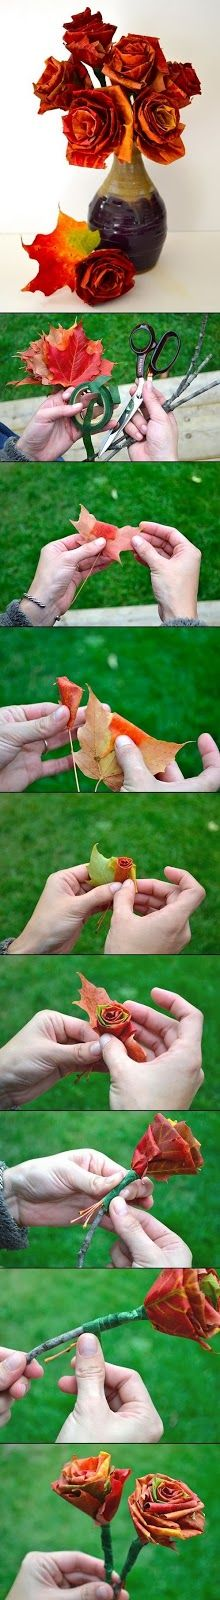 DIY PROJECT: AUTUMN LEAF BOUQUET  Materials  10 colorful maple leaves per flower in various sizes (they should be...